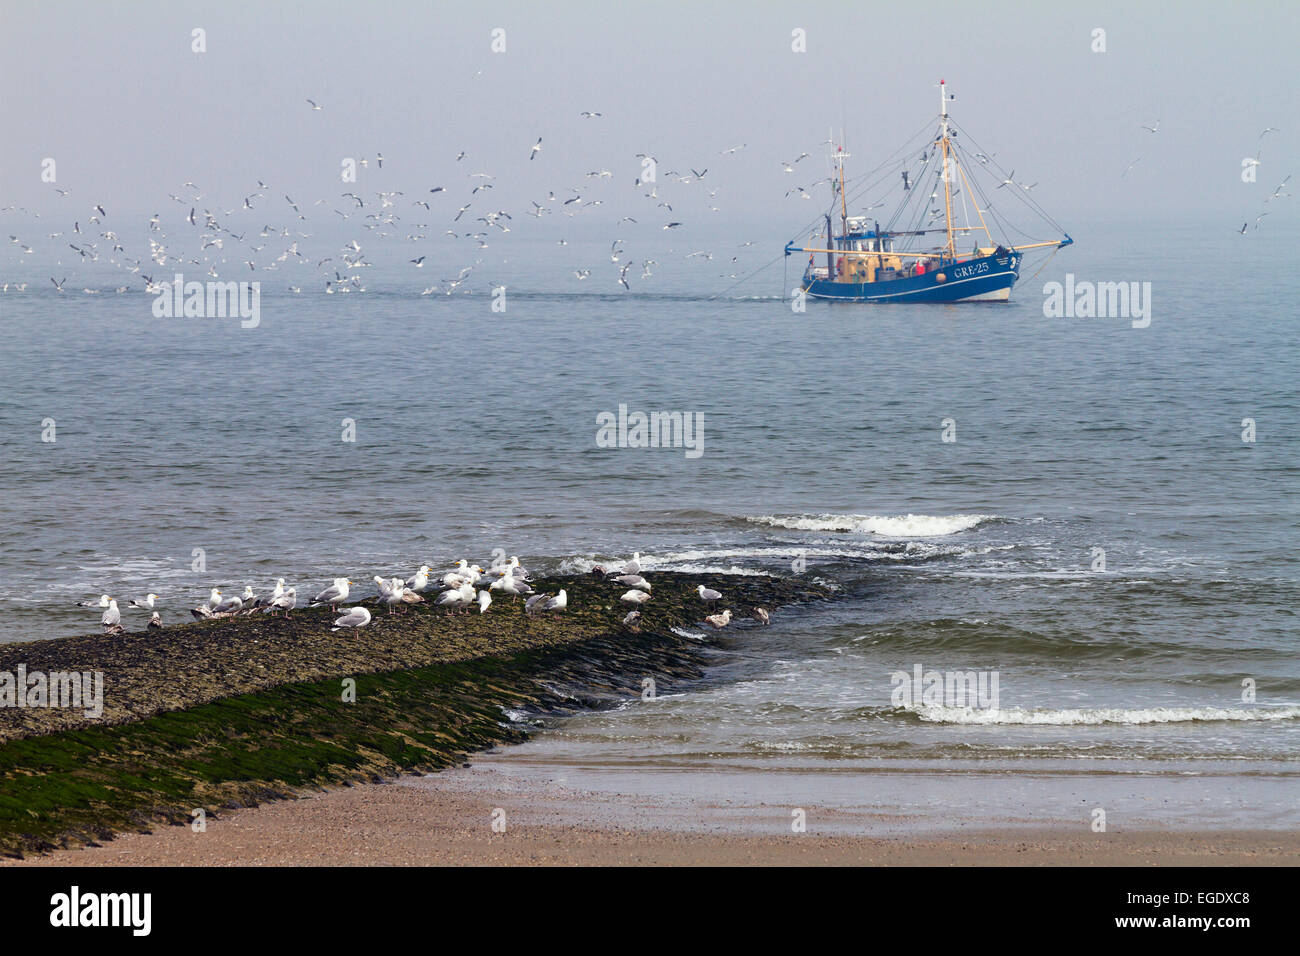 Fishing boat with gulls off Norderney Island, Nationalpark, North Sea, East Frisian Islands, East Frisia, Lower - Stock Image